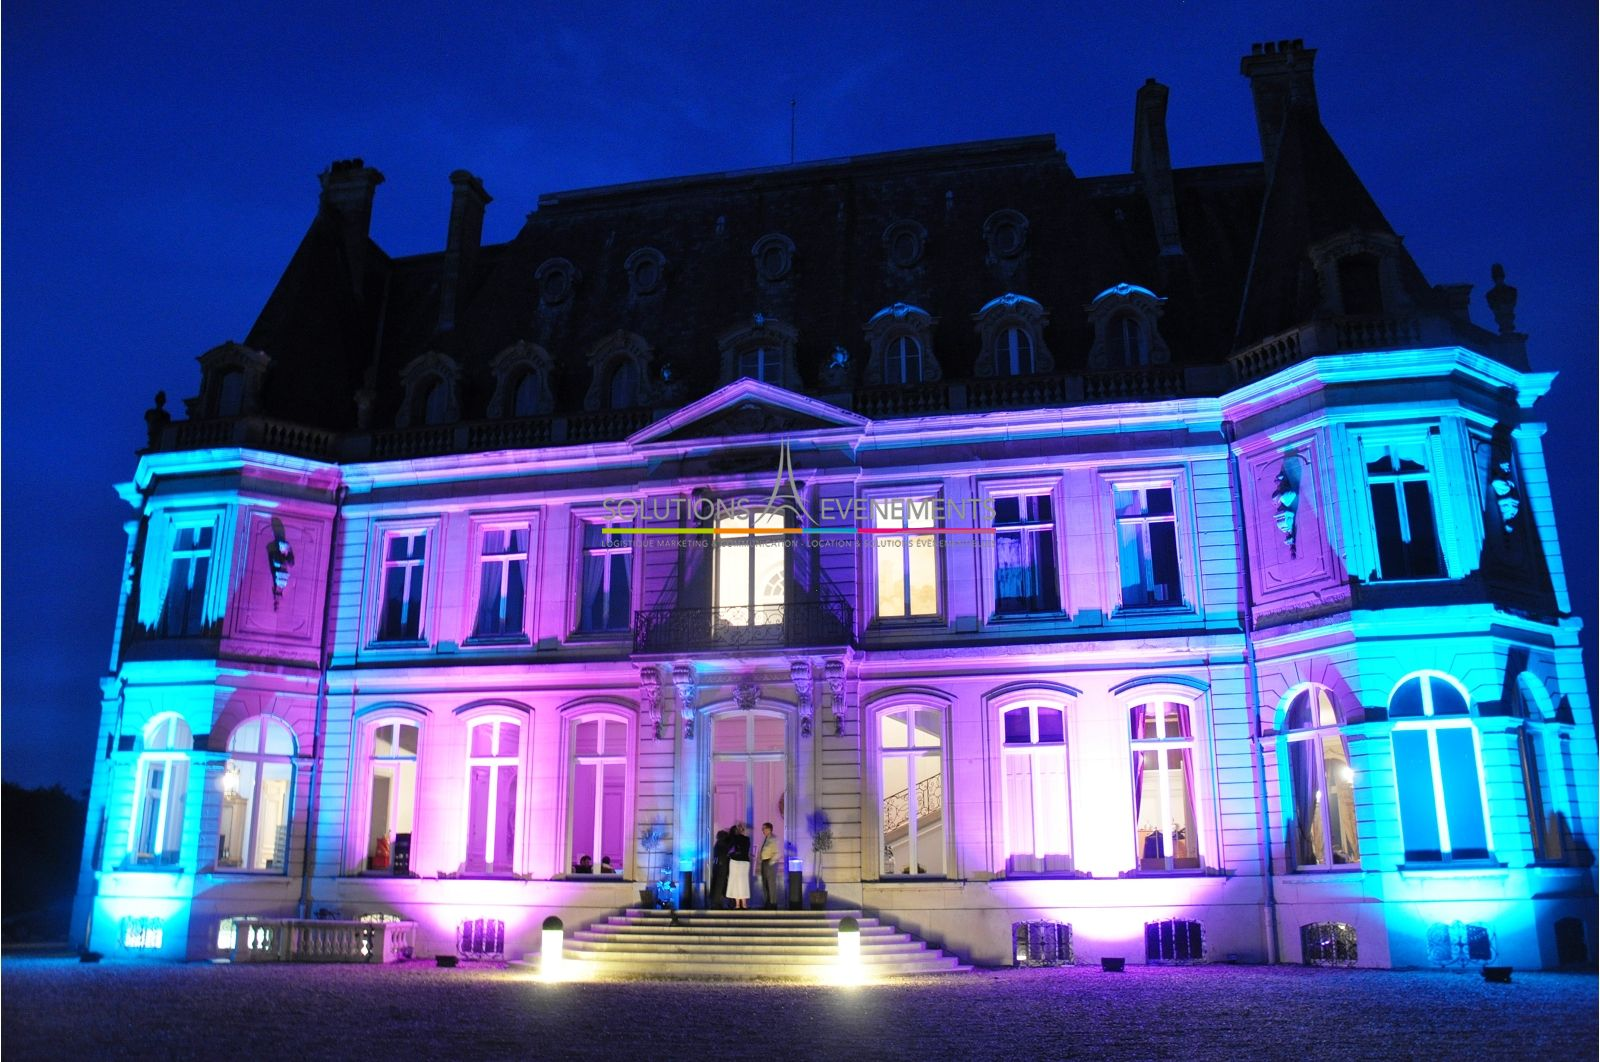 Eclairage Led Batiment Industriel Locationeclairage Exterieur Architectural Led